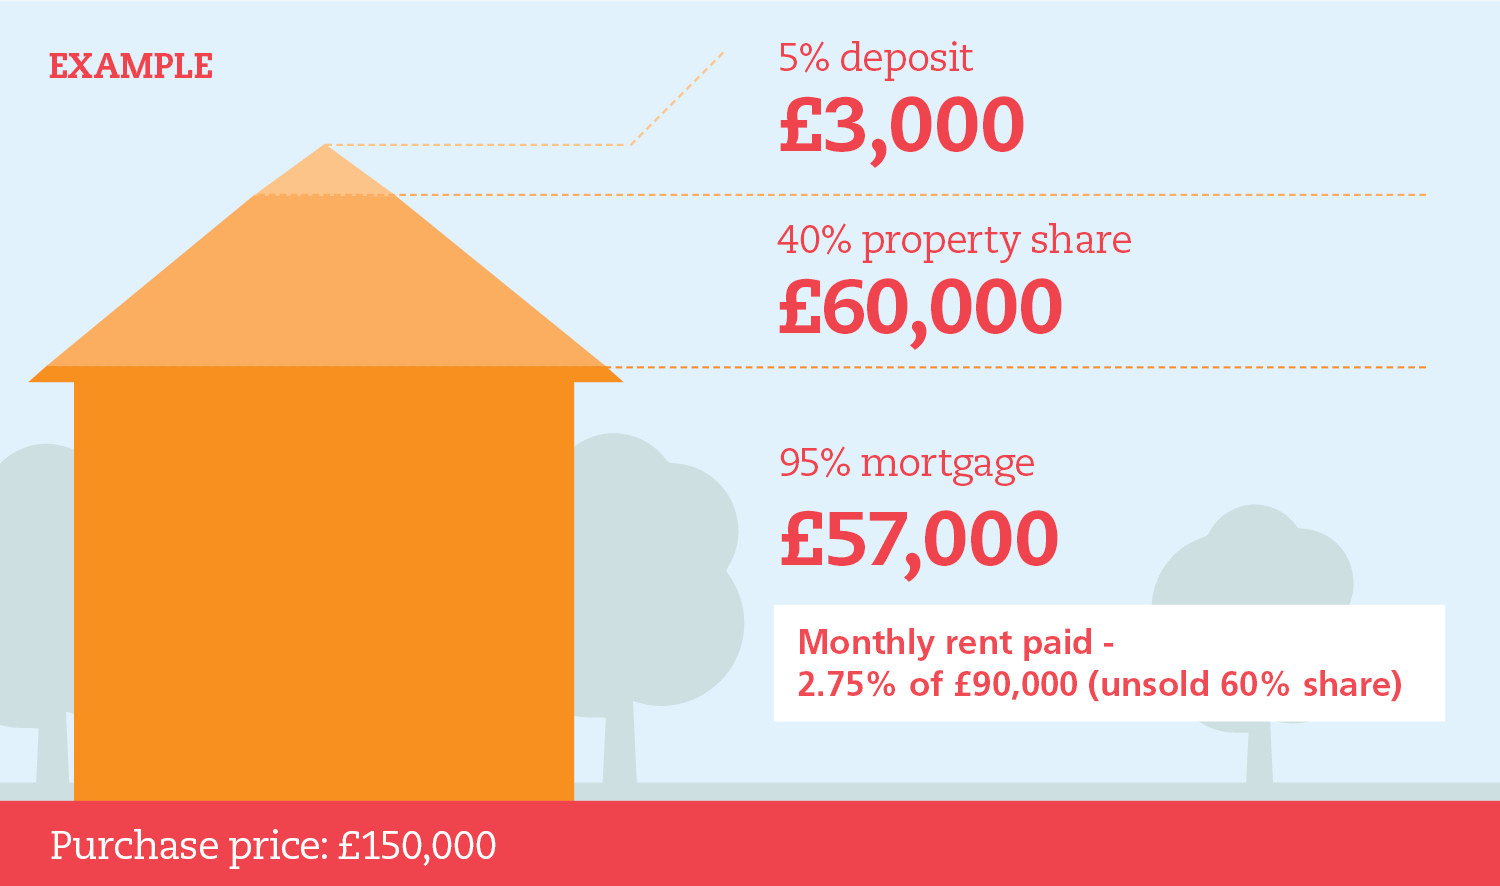 Shared ownership diagram. Deposit. Property share. Mortgage